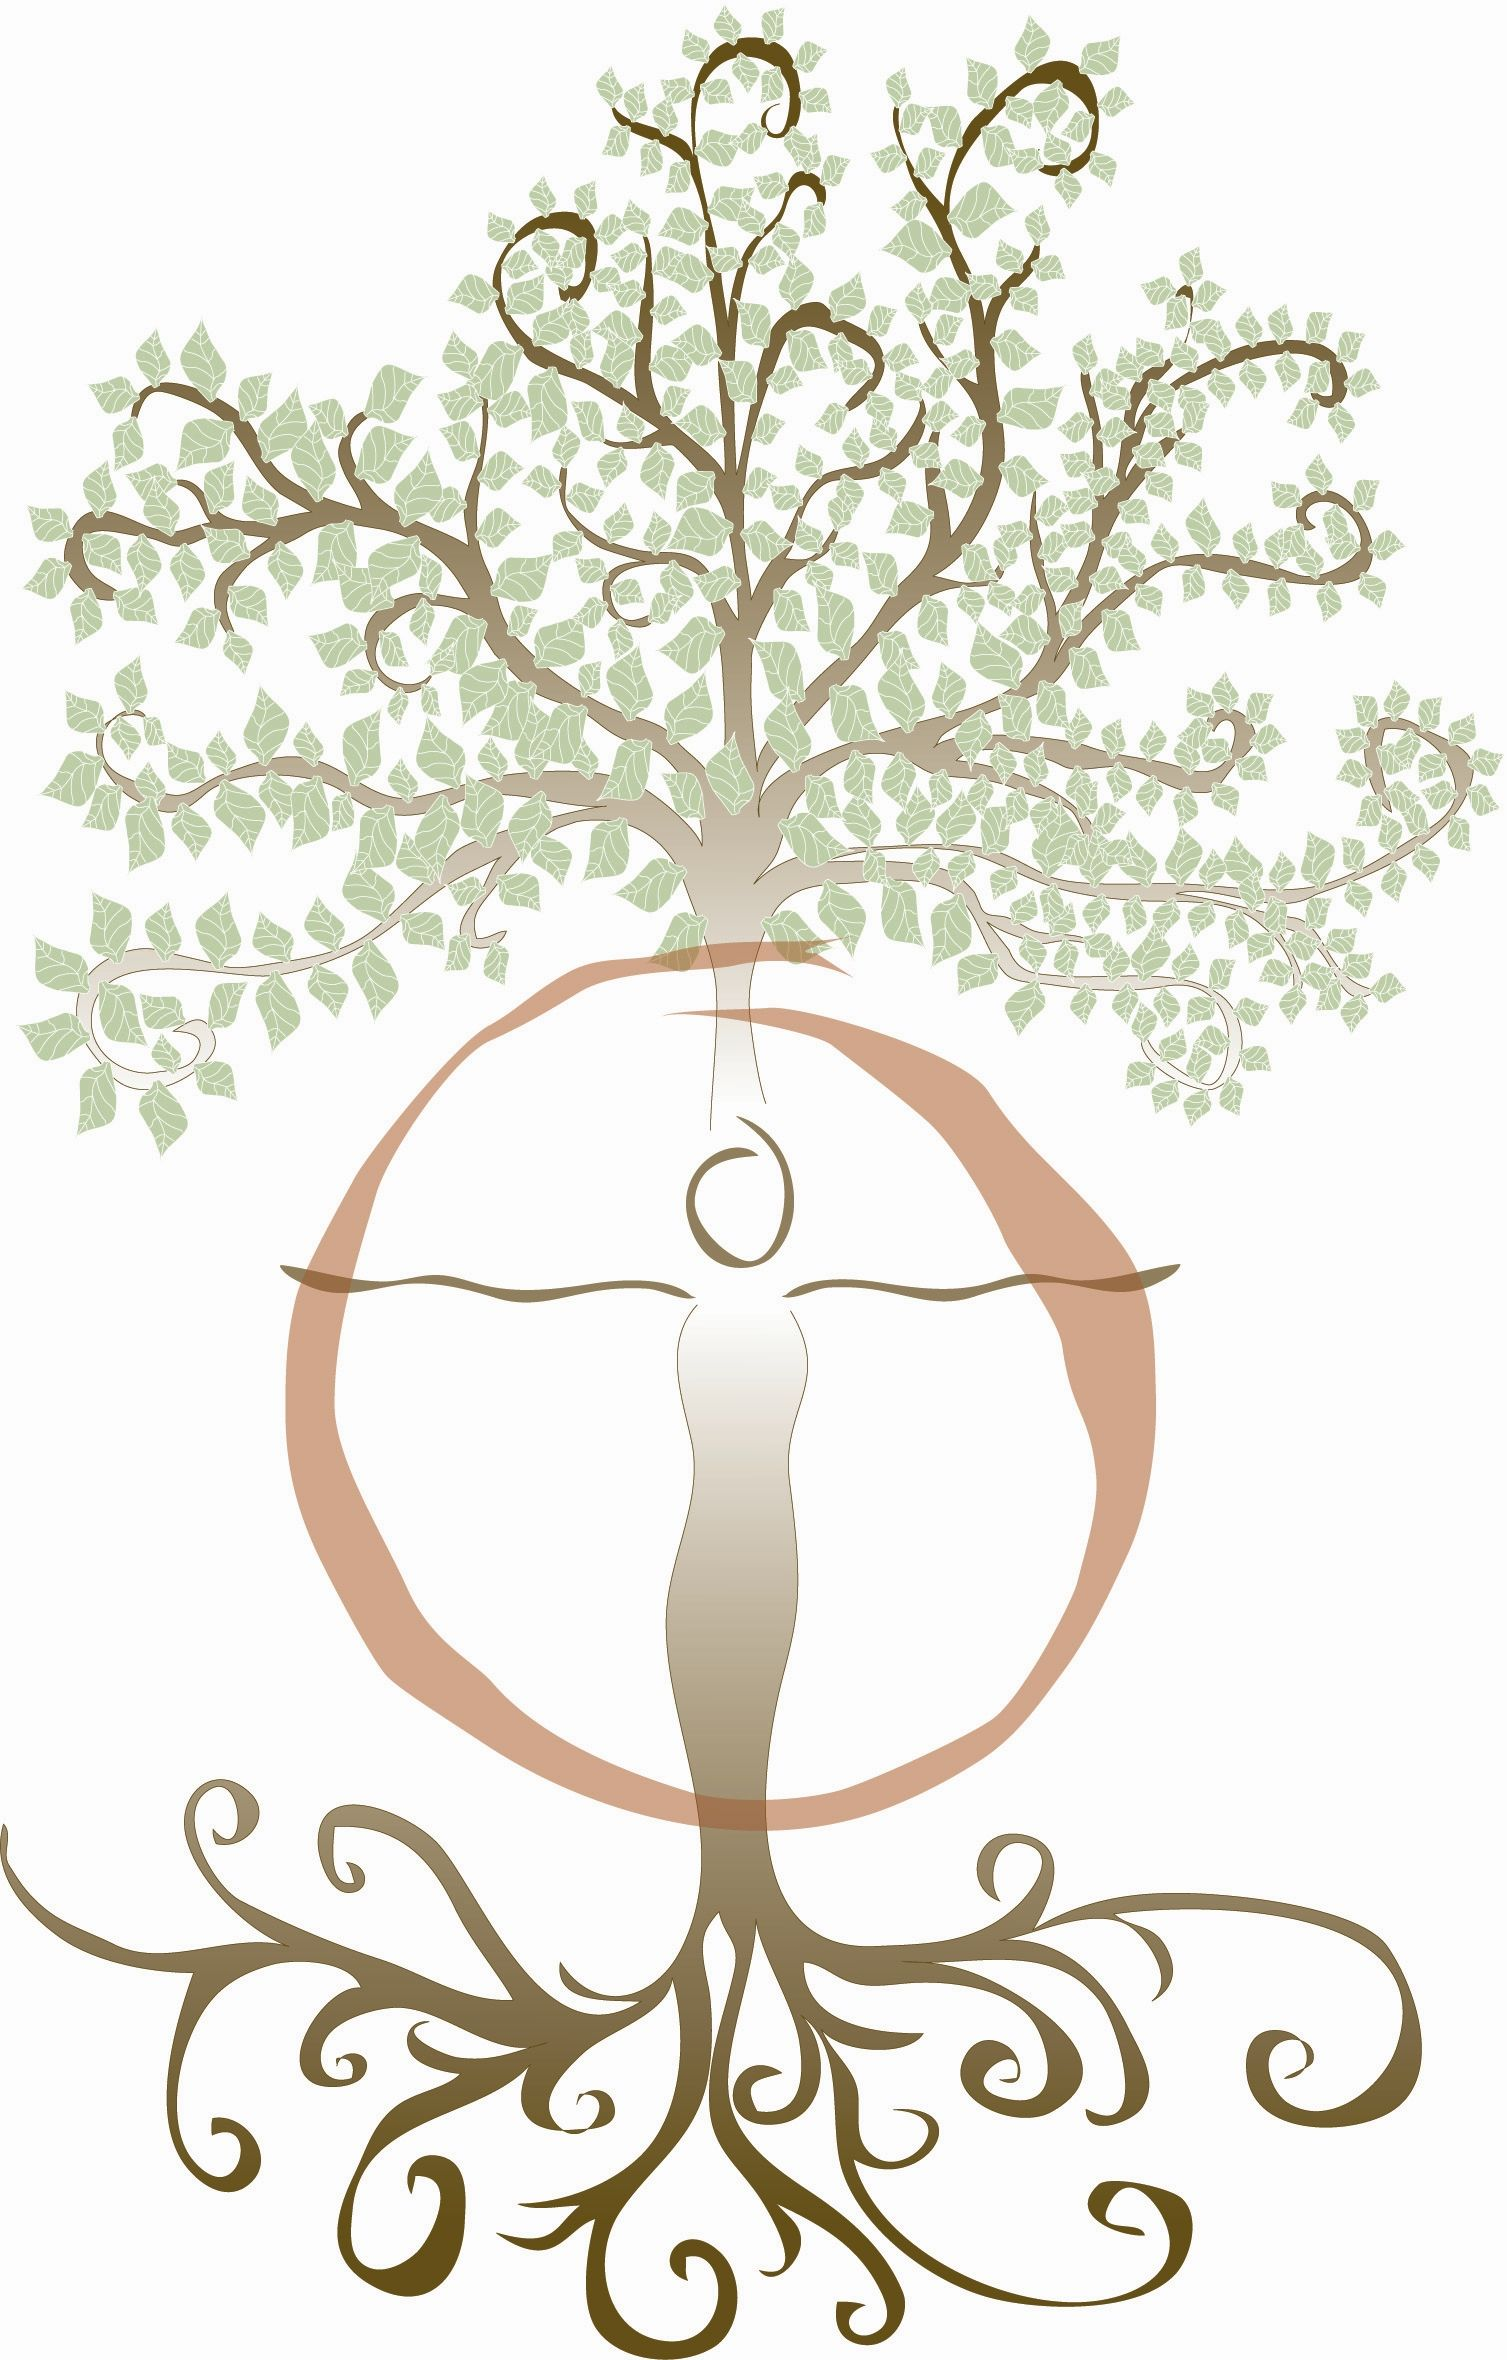 Mother Goddess Symbol Symbol With The Circle Surrounding Her